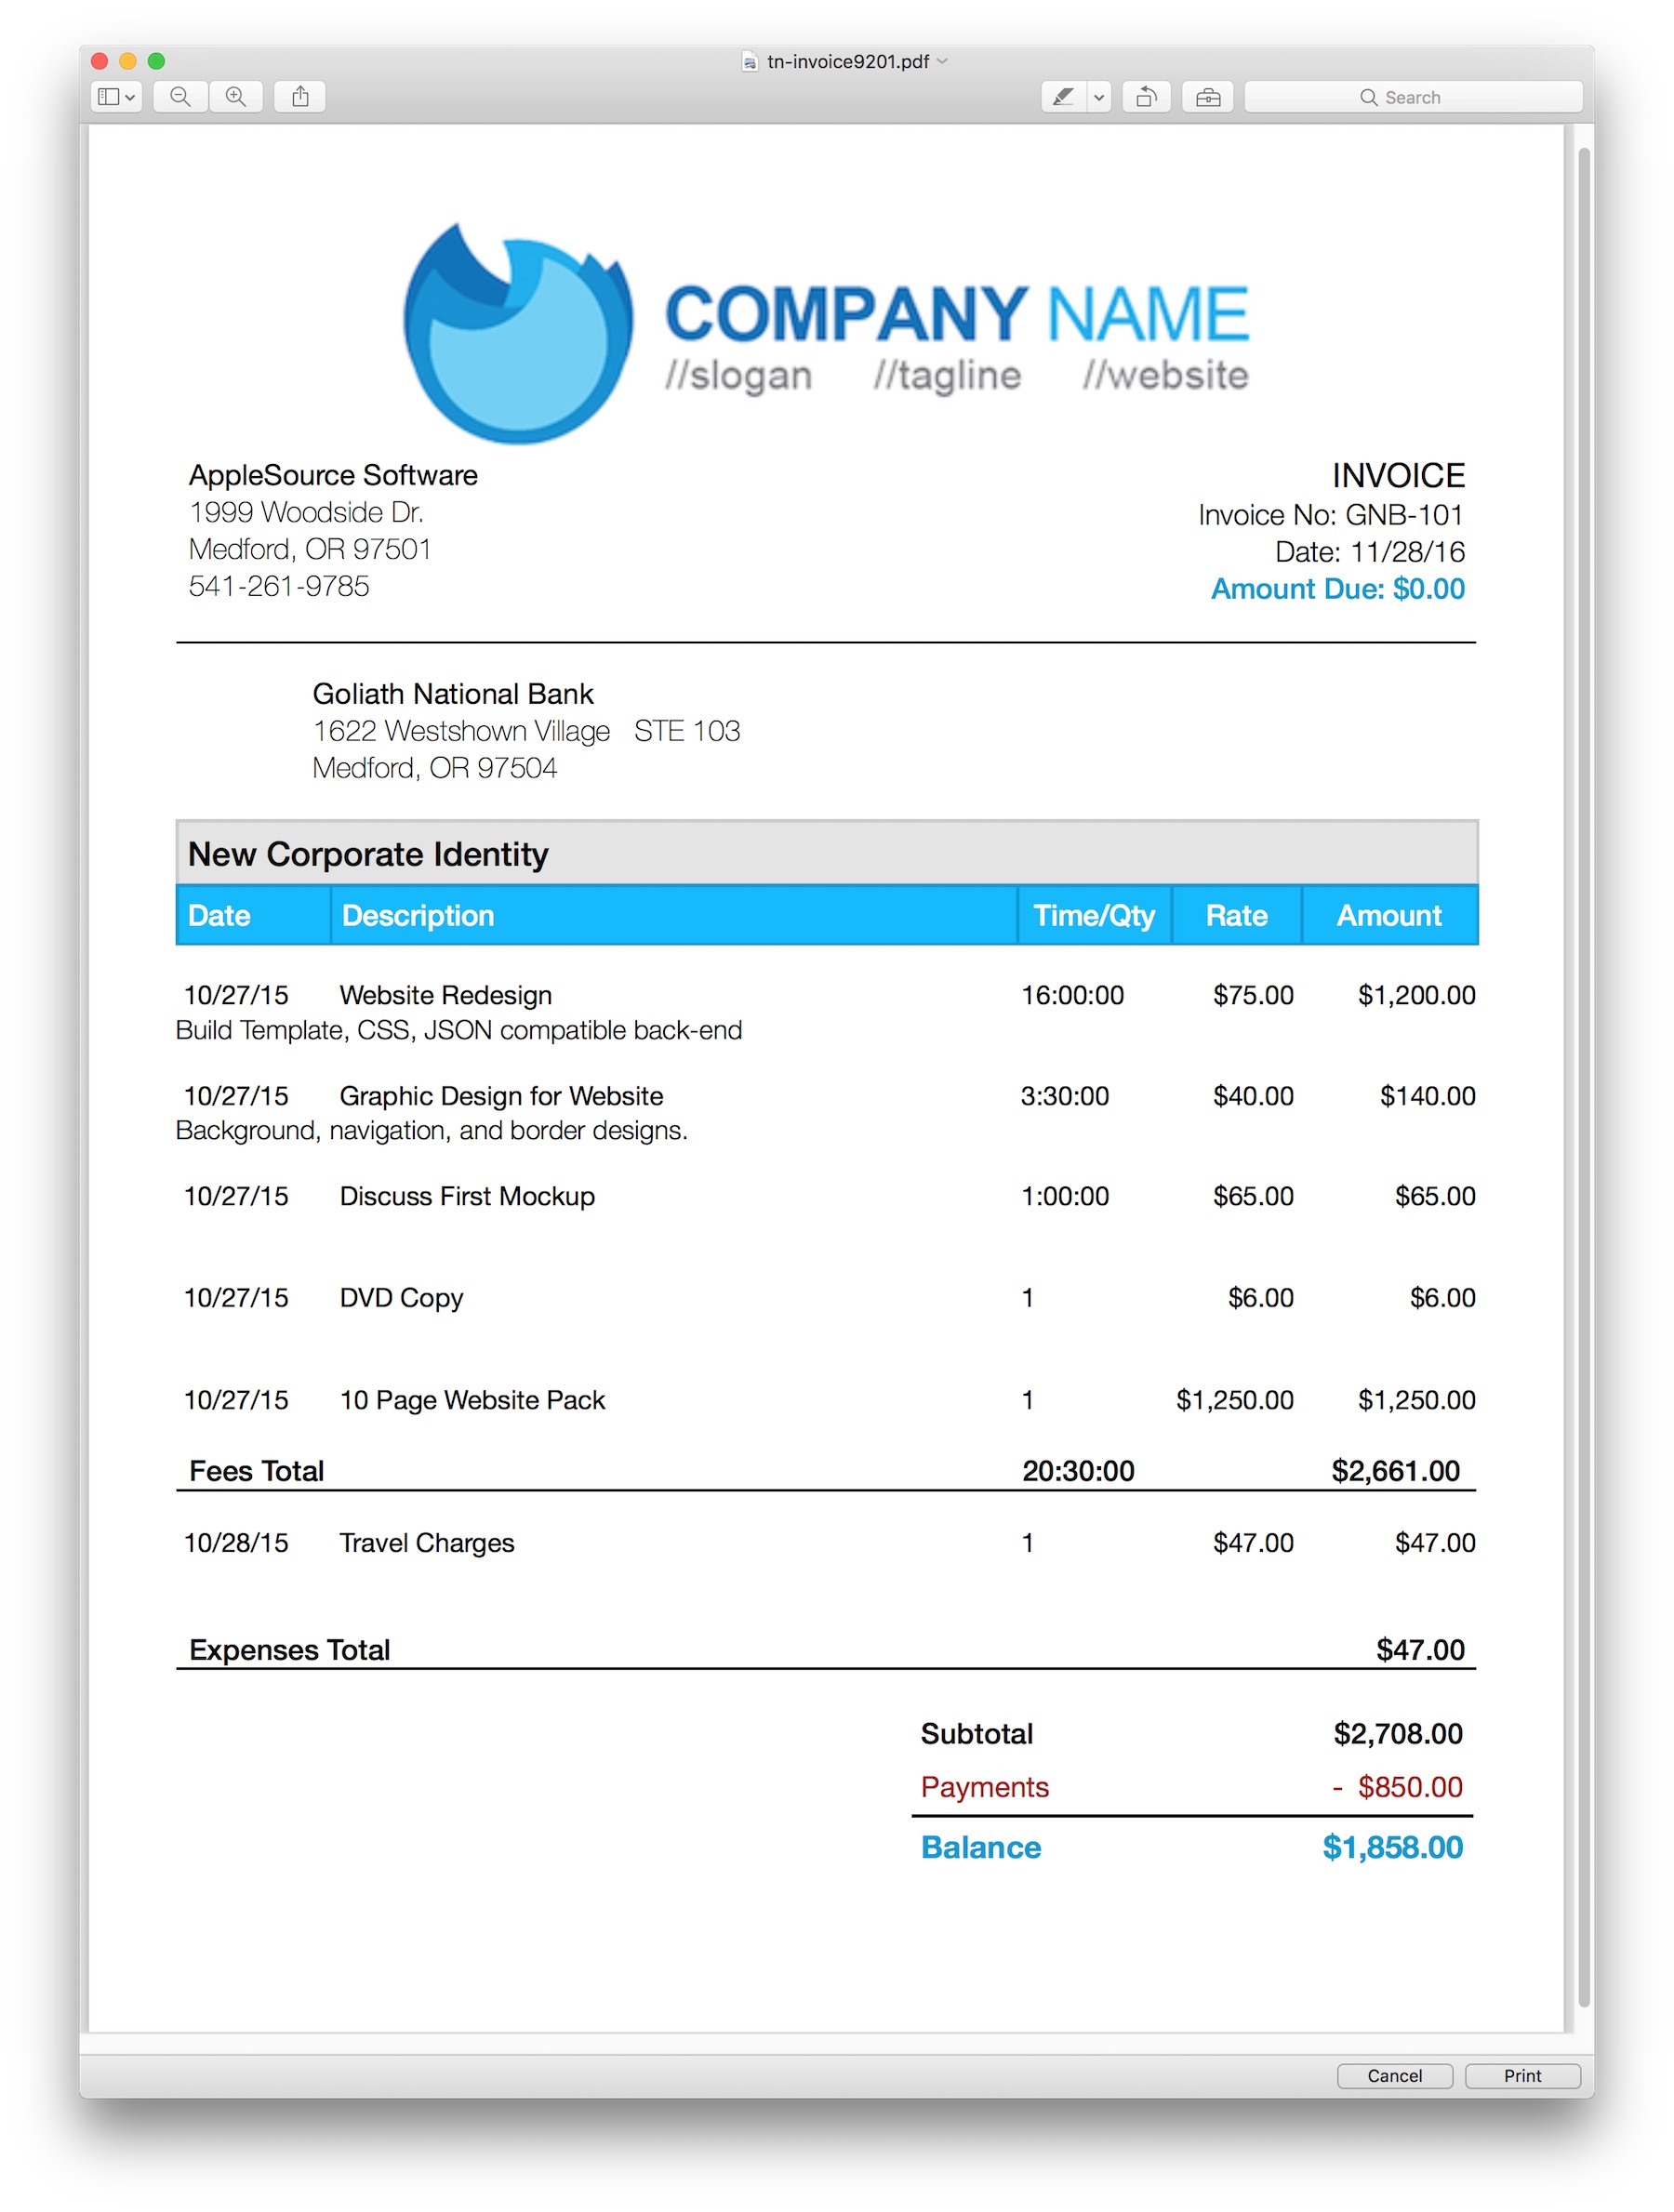 AppleSource Software TimeNet Invoice Templates Time Tracking - Image of invoice template